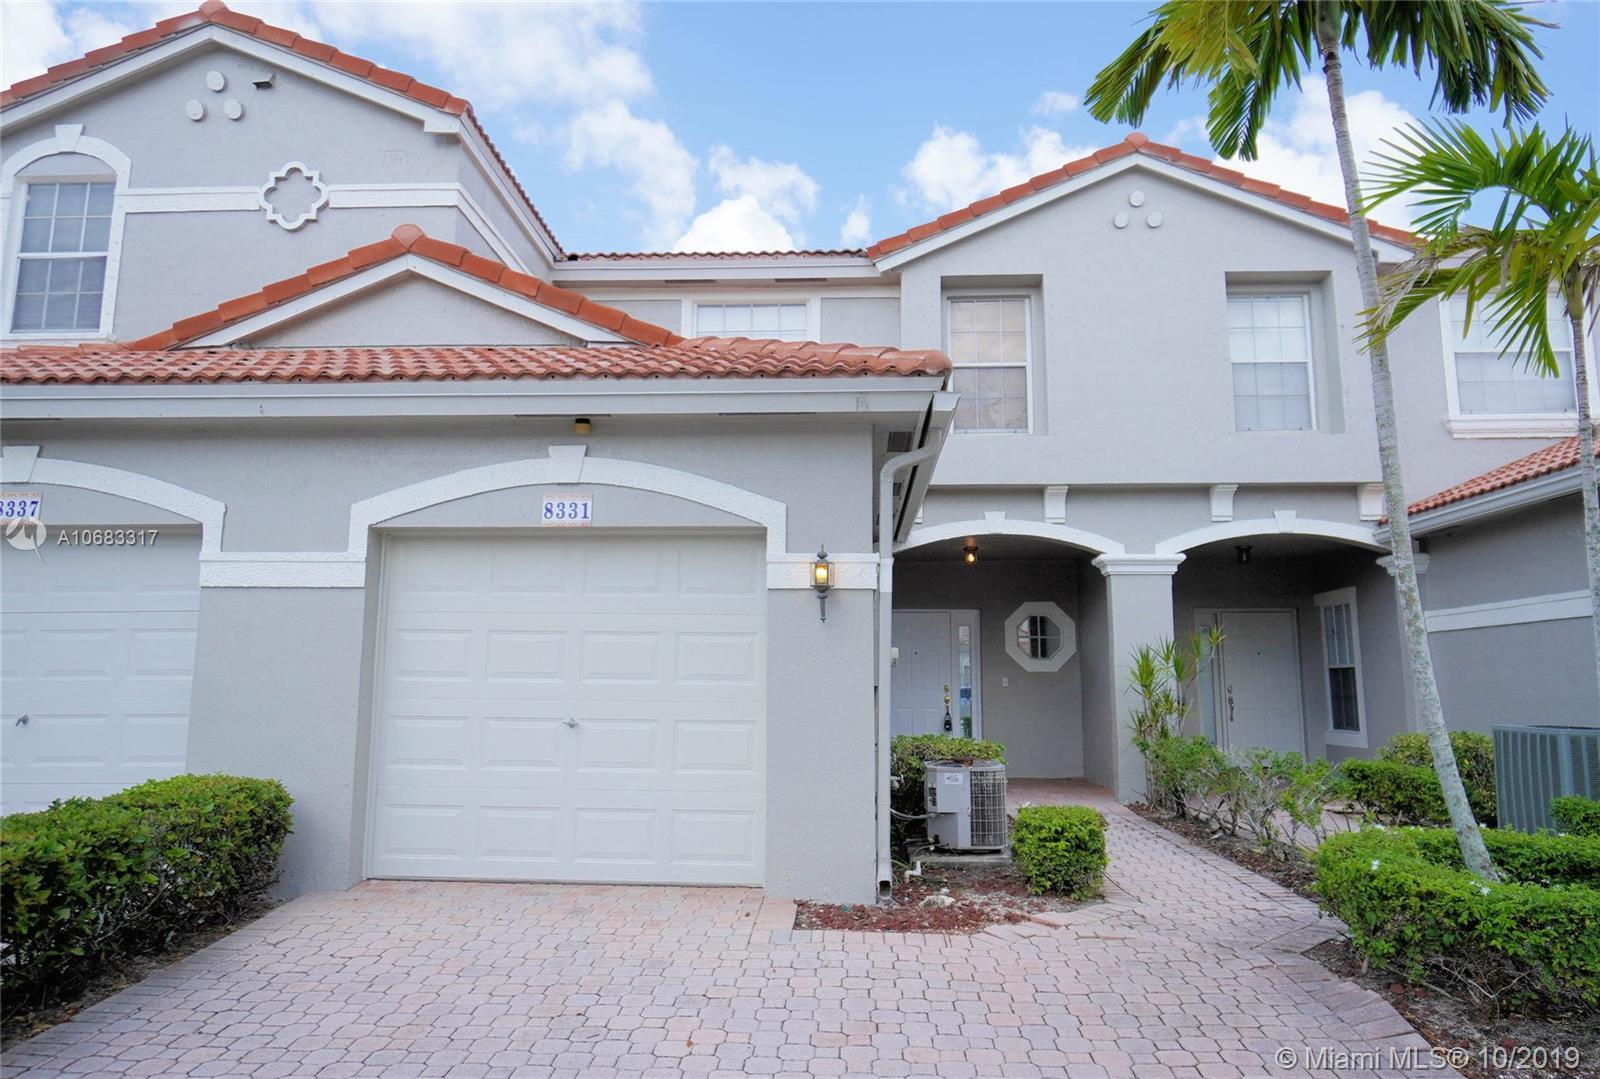 Location! Location! Location,! . Big 3 Bedroom 2.5 Baths and a One Car Garage.Beautiful Paved  Front